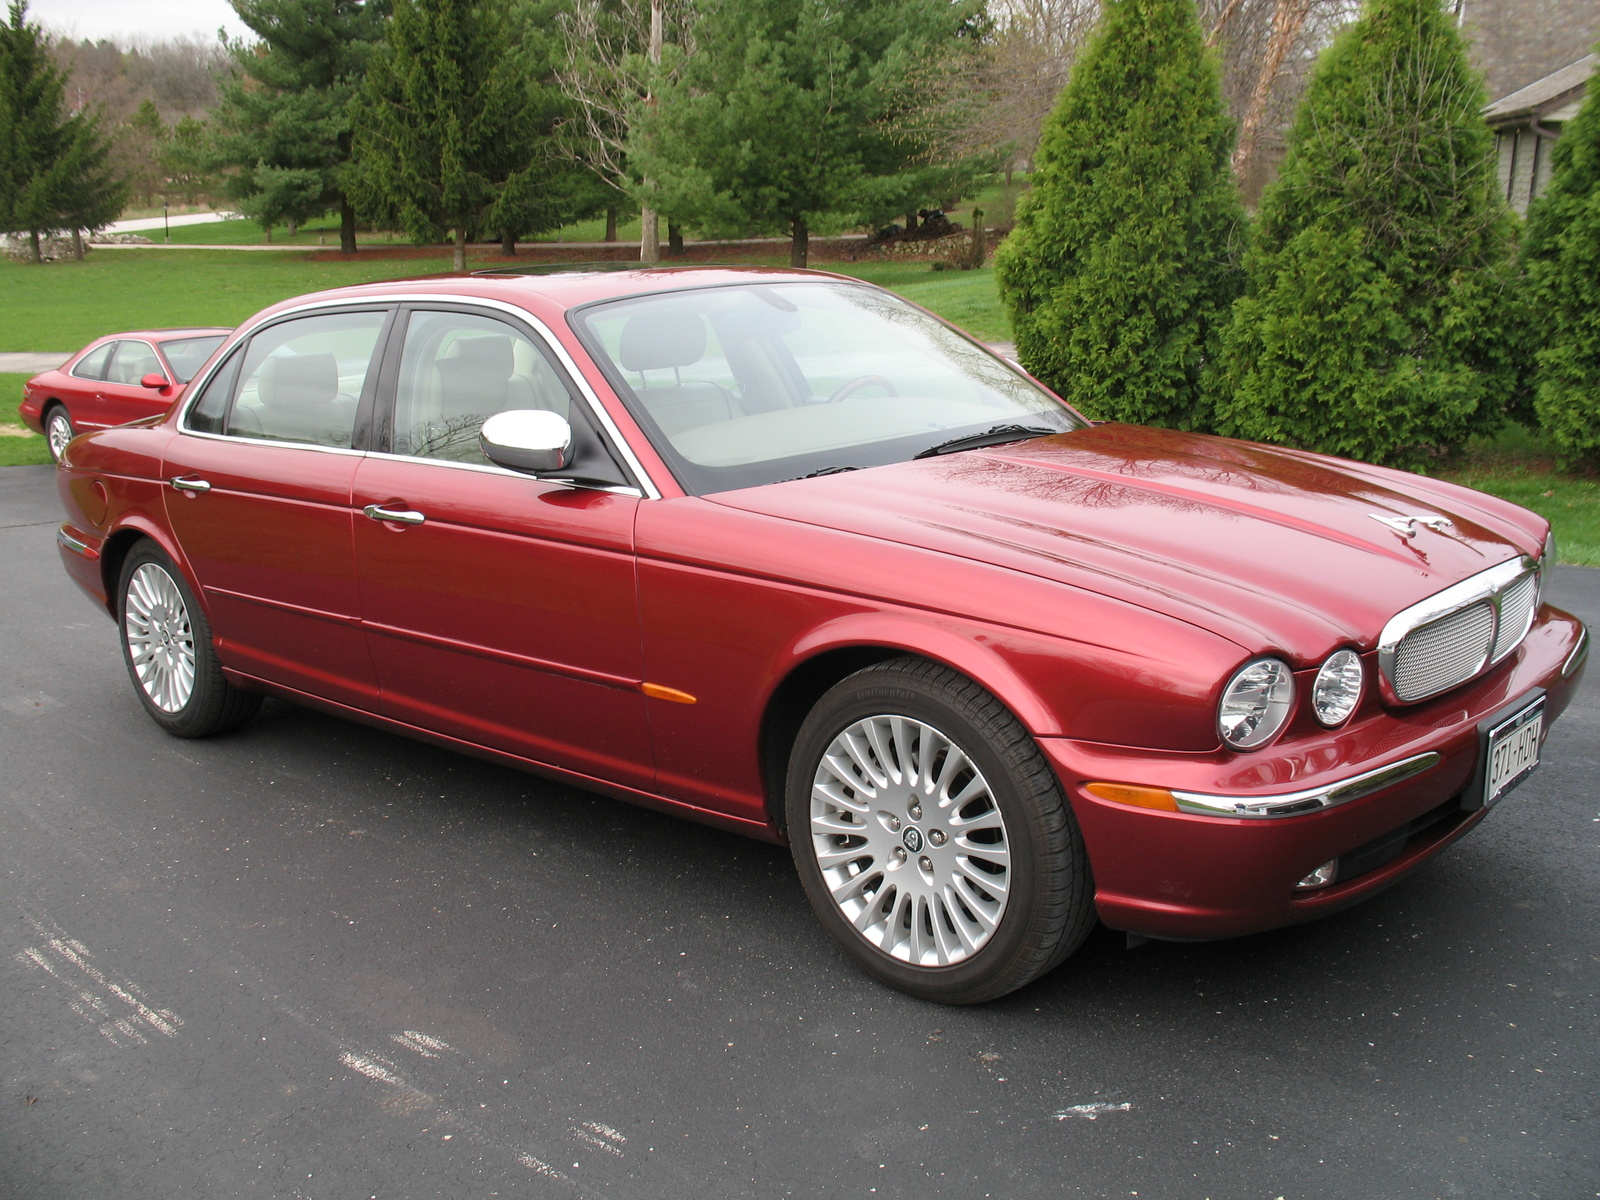 2007 Jaguar XJ Series #17 Jaguar XJ Series #17